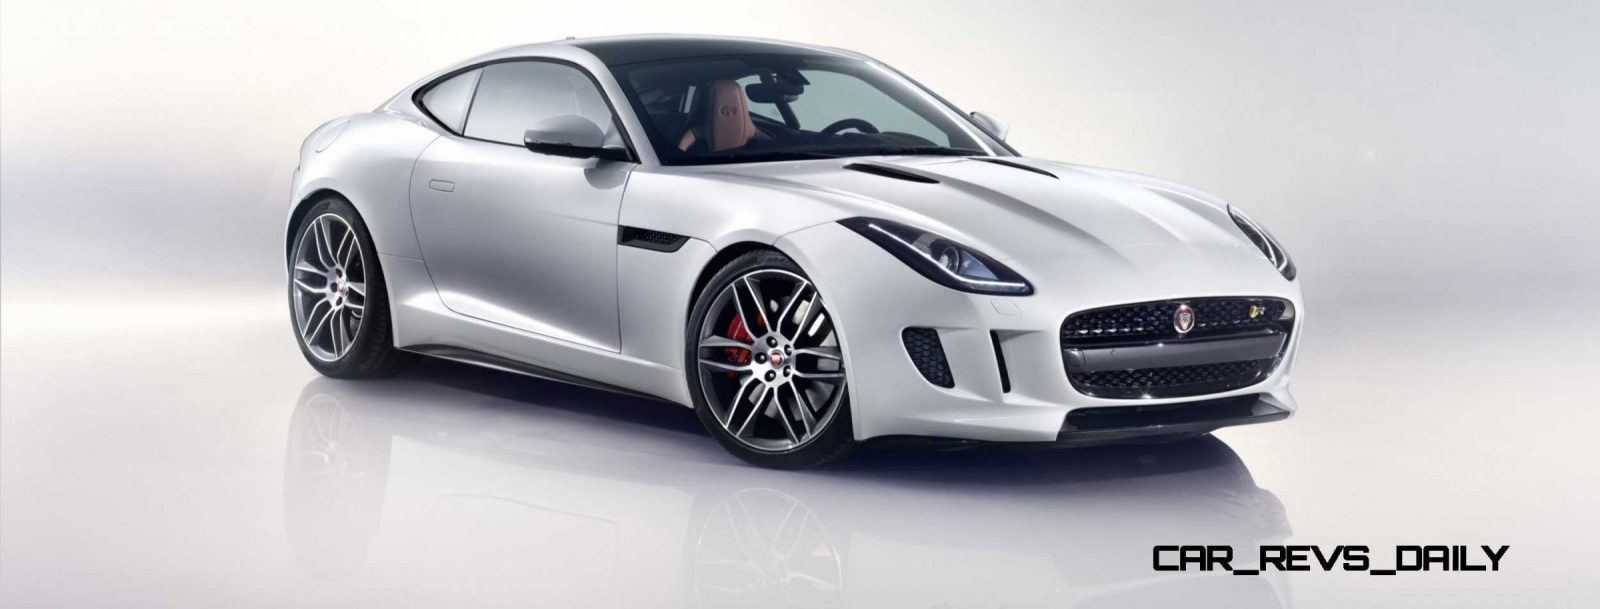 Jaguar Makes a WINNER!  2015 F-type R Coupe Debut29